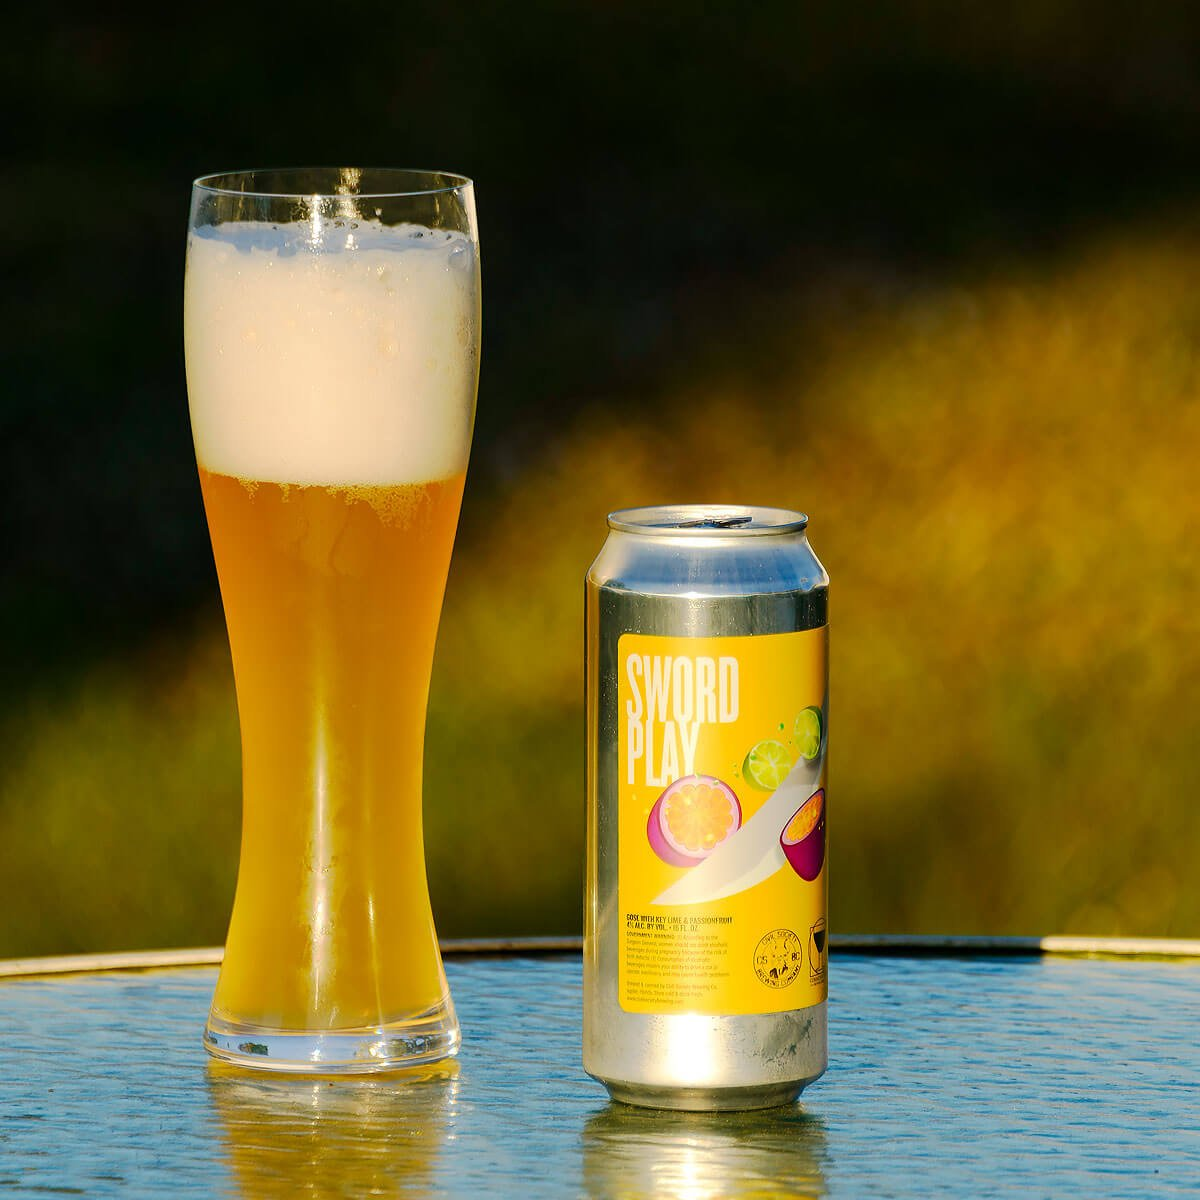 Sword Play, a German-style Gose collaboratively brewed by Civil Society Brewing Co. and Commonwealth Brewing Co.